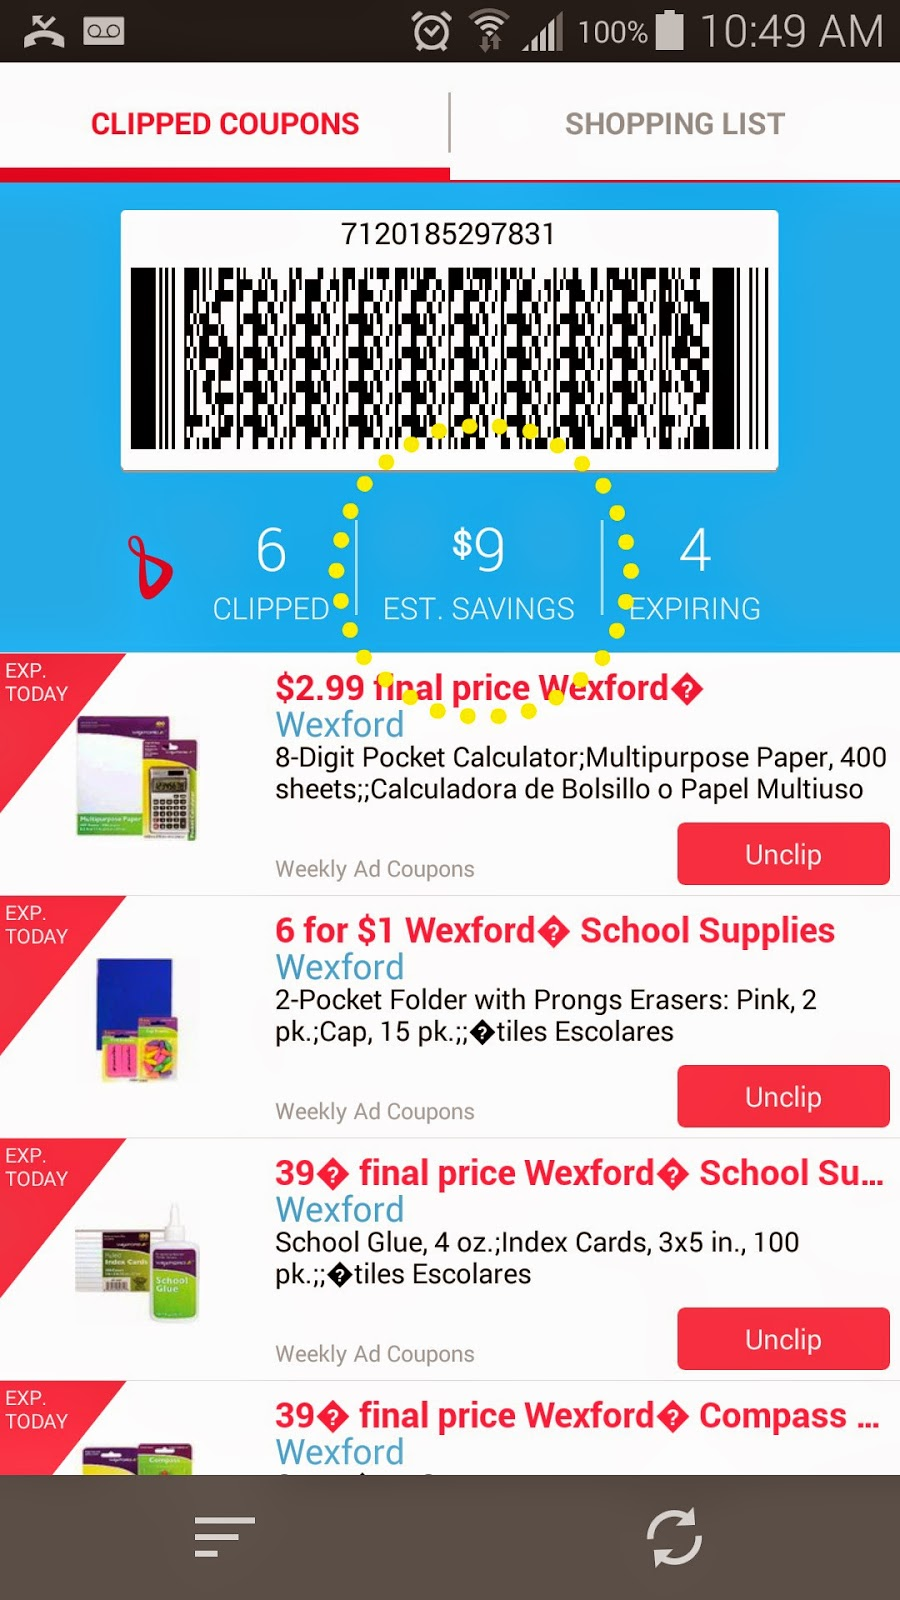 New coupons available on Walgreens Mobile App #WalgreensPaperless #shop